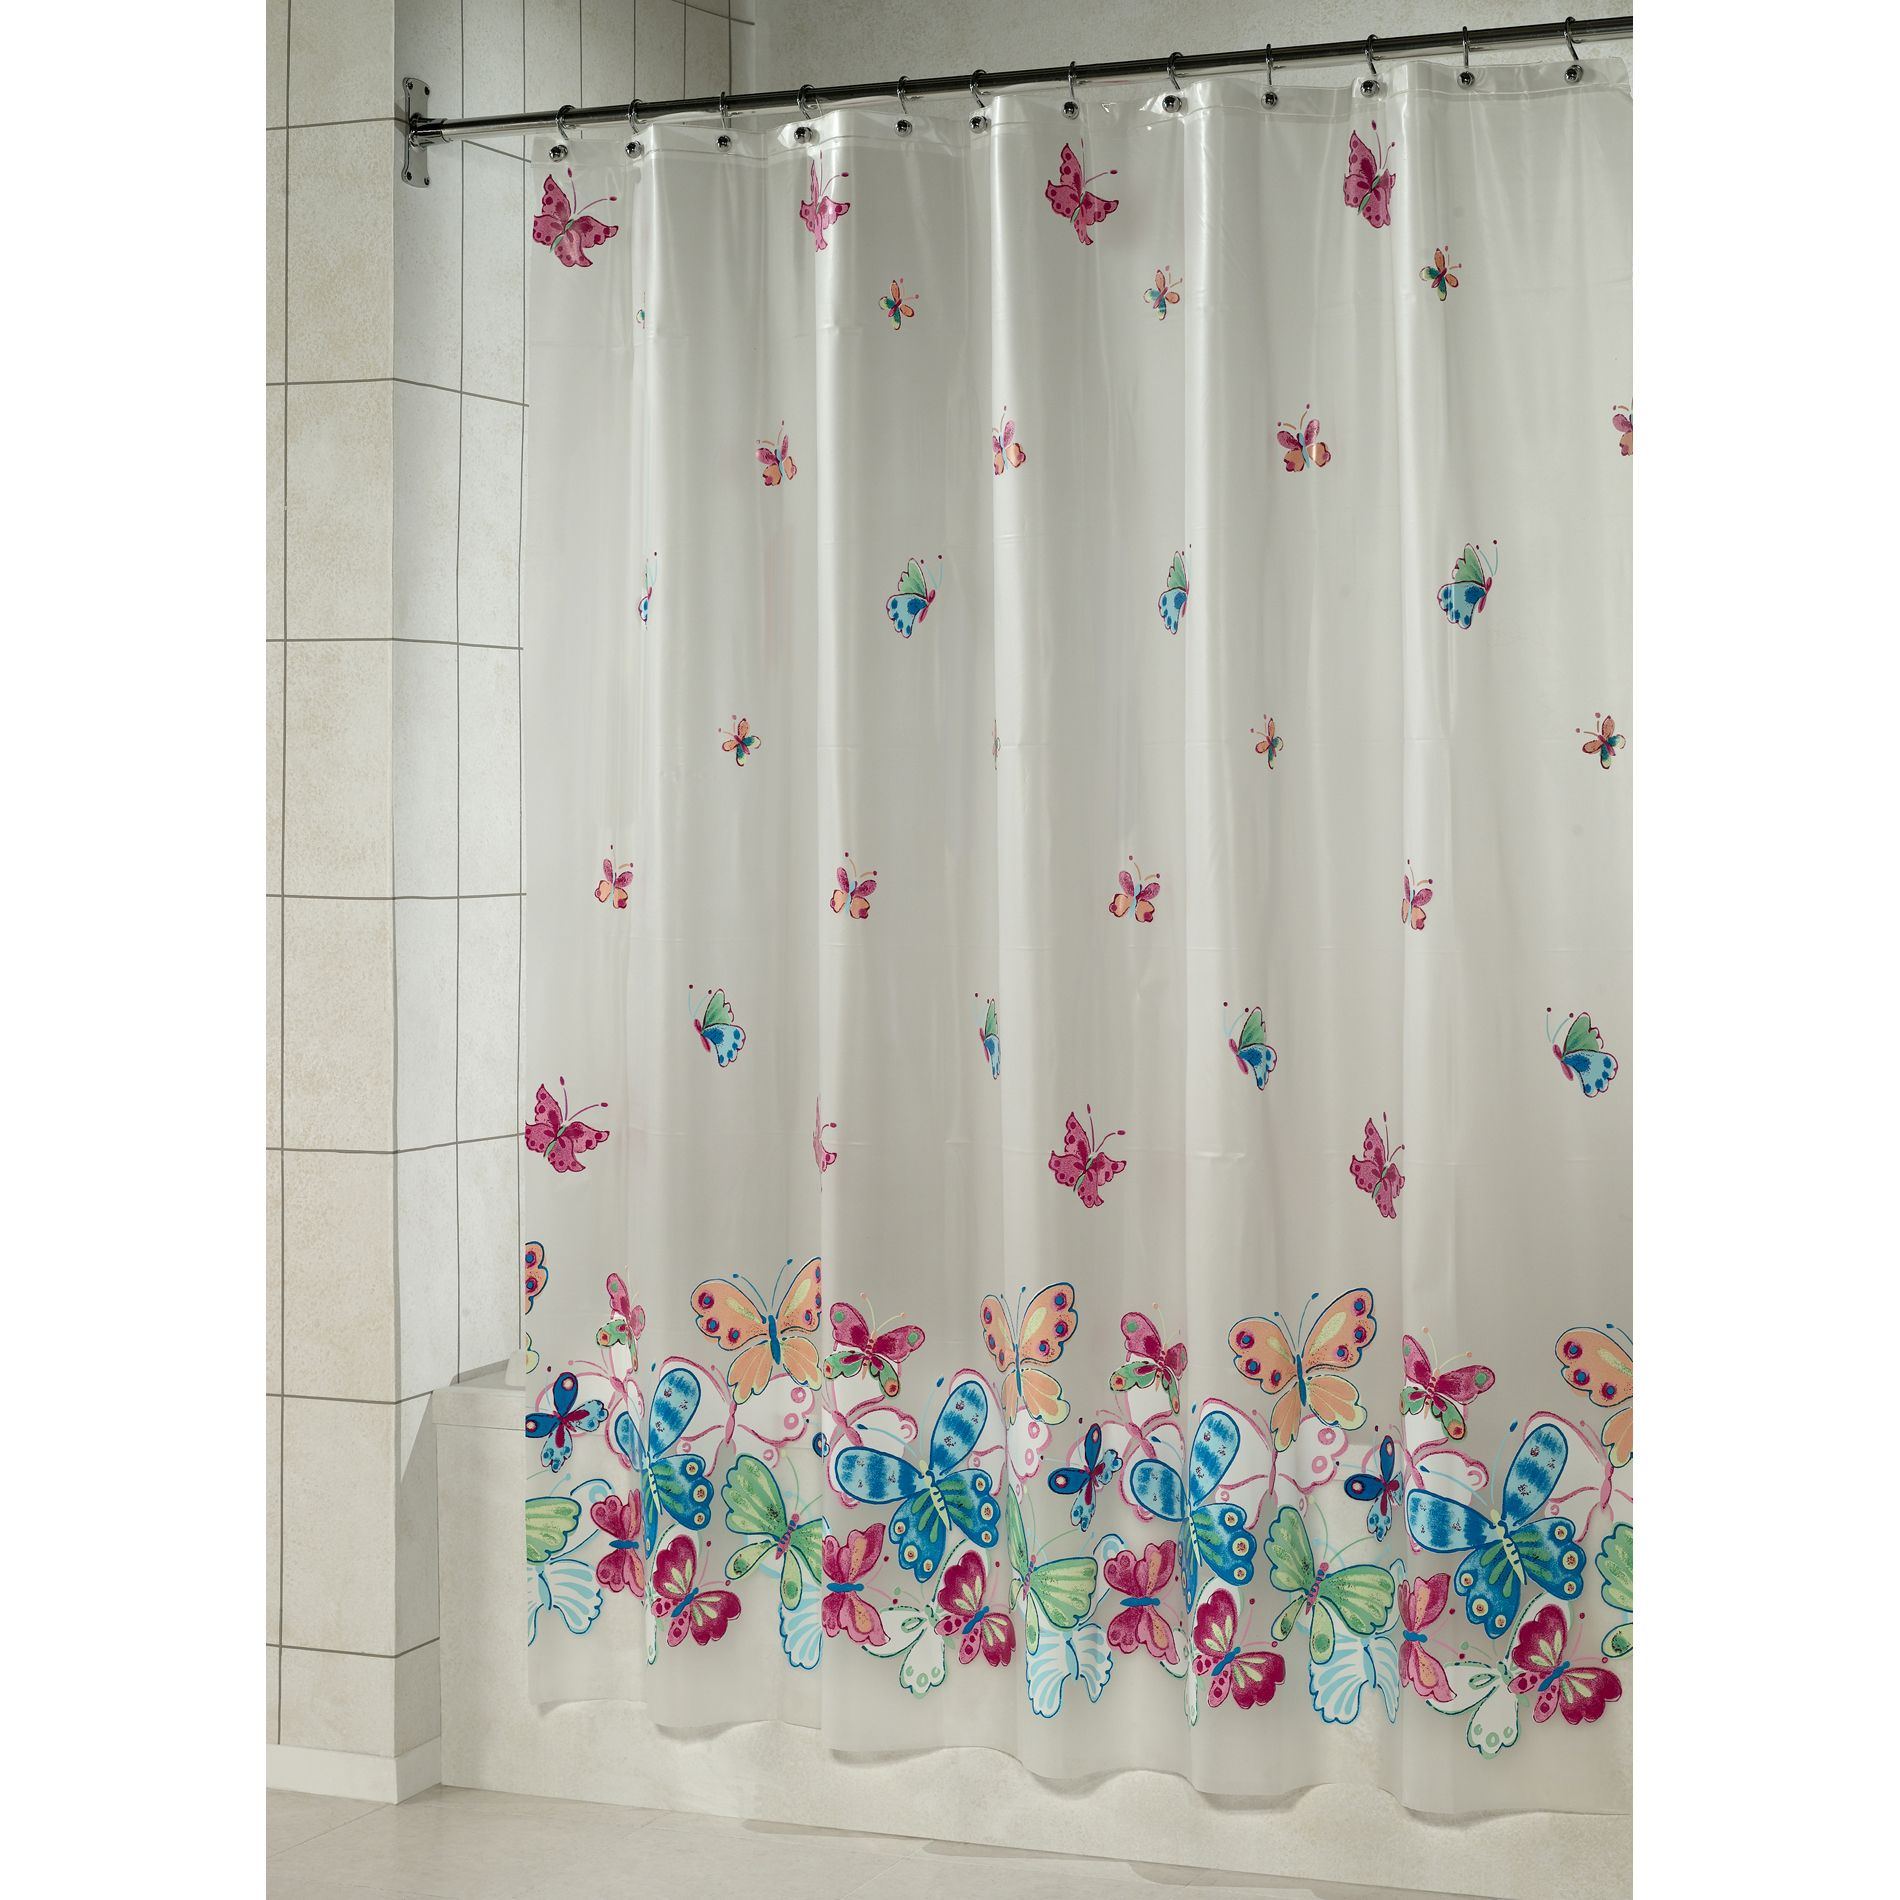 Sunshiny Tropical Fish Shower Curtain Shells Fish Ocean Coral Fish within dimensions 1900 X 1900